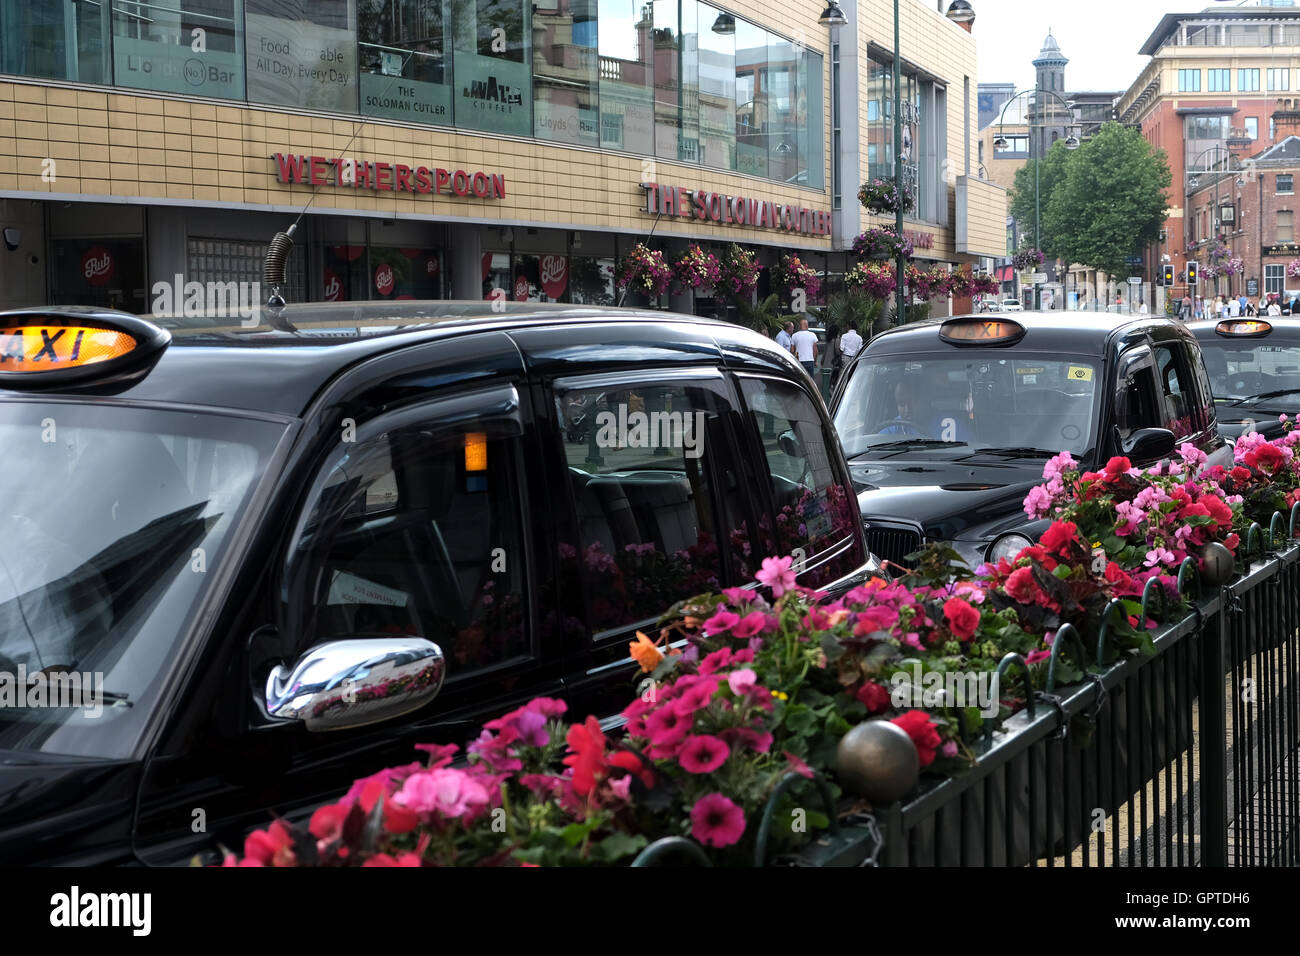 A row of black cabs, taxis, with illuminated signs waiting for customers on a busy High st Stock Photo